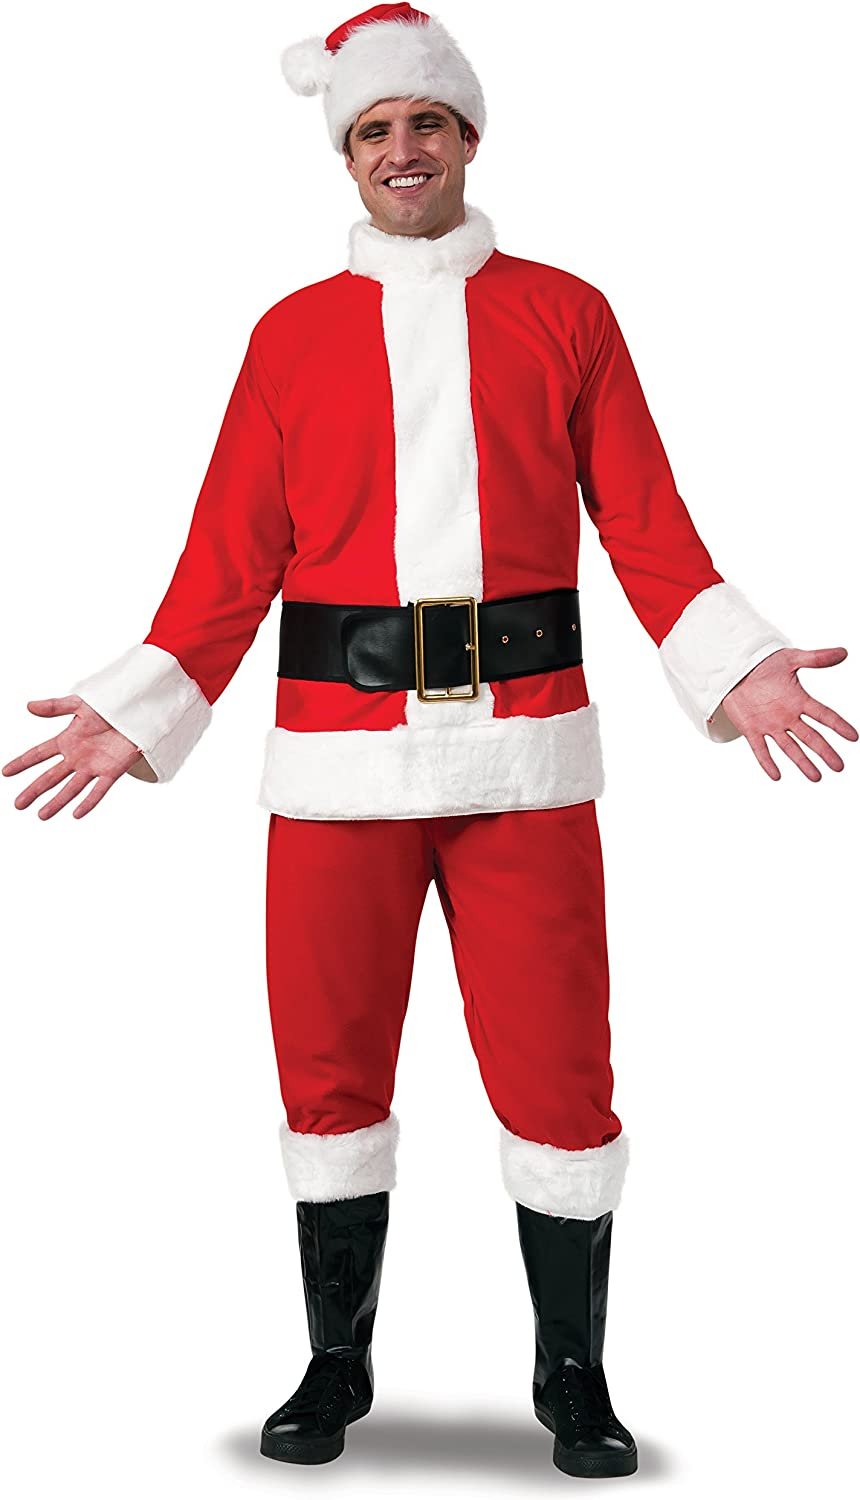 Rubies Bright Red Flannel Santa Suit with Gloves